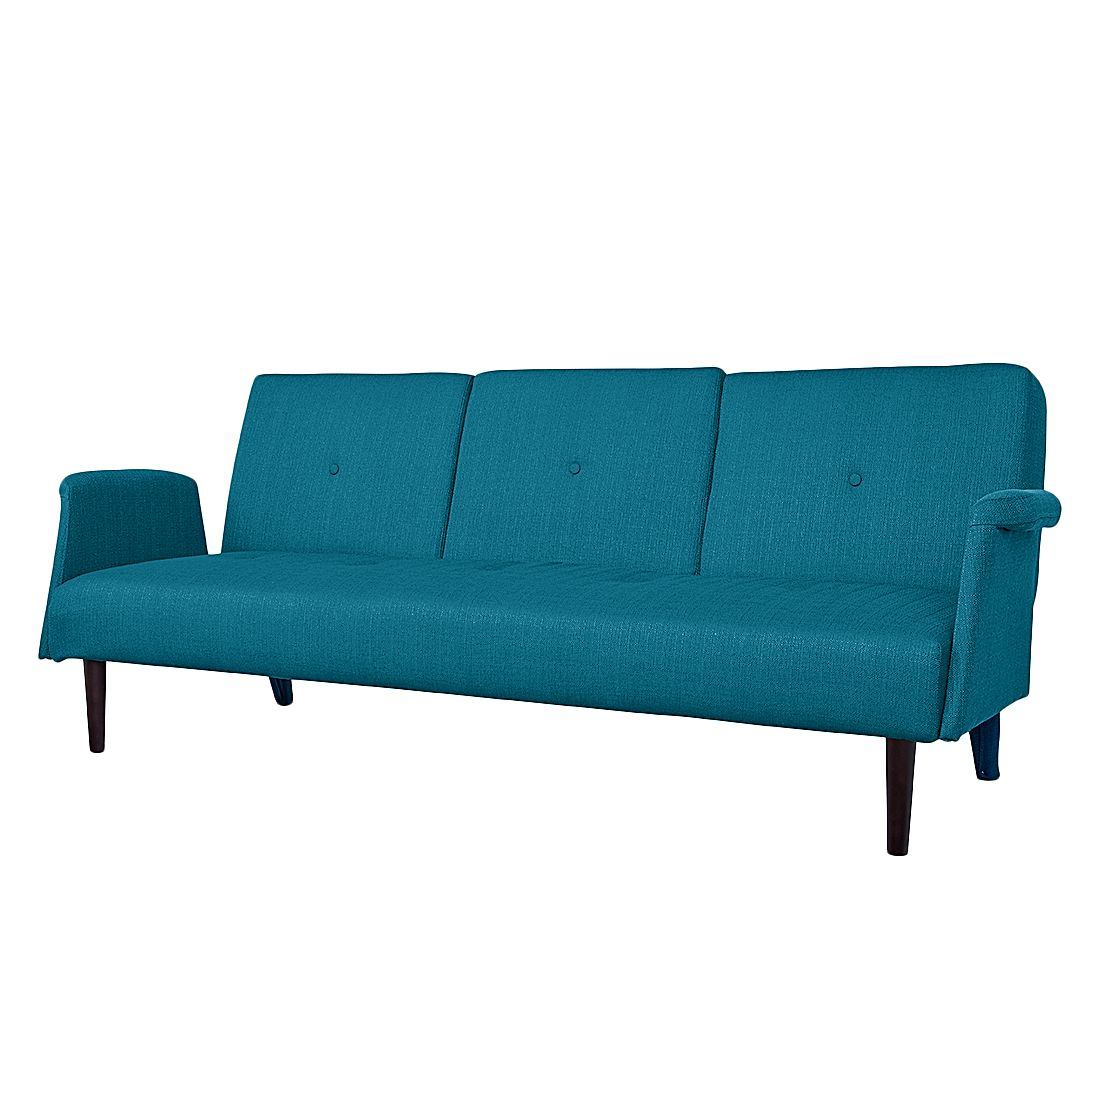 schlafsofa mads webstoff petrol schlafsofa mads webstoff petrol morteens m bel24 online. Black Bedroom Furniture Sets. Home Design Ideas